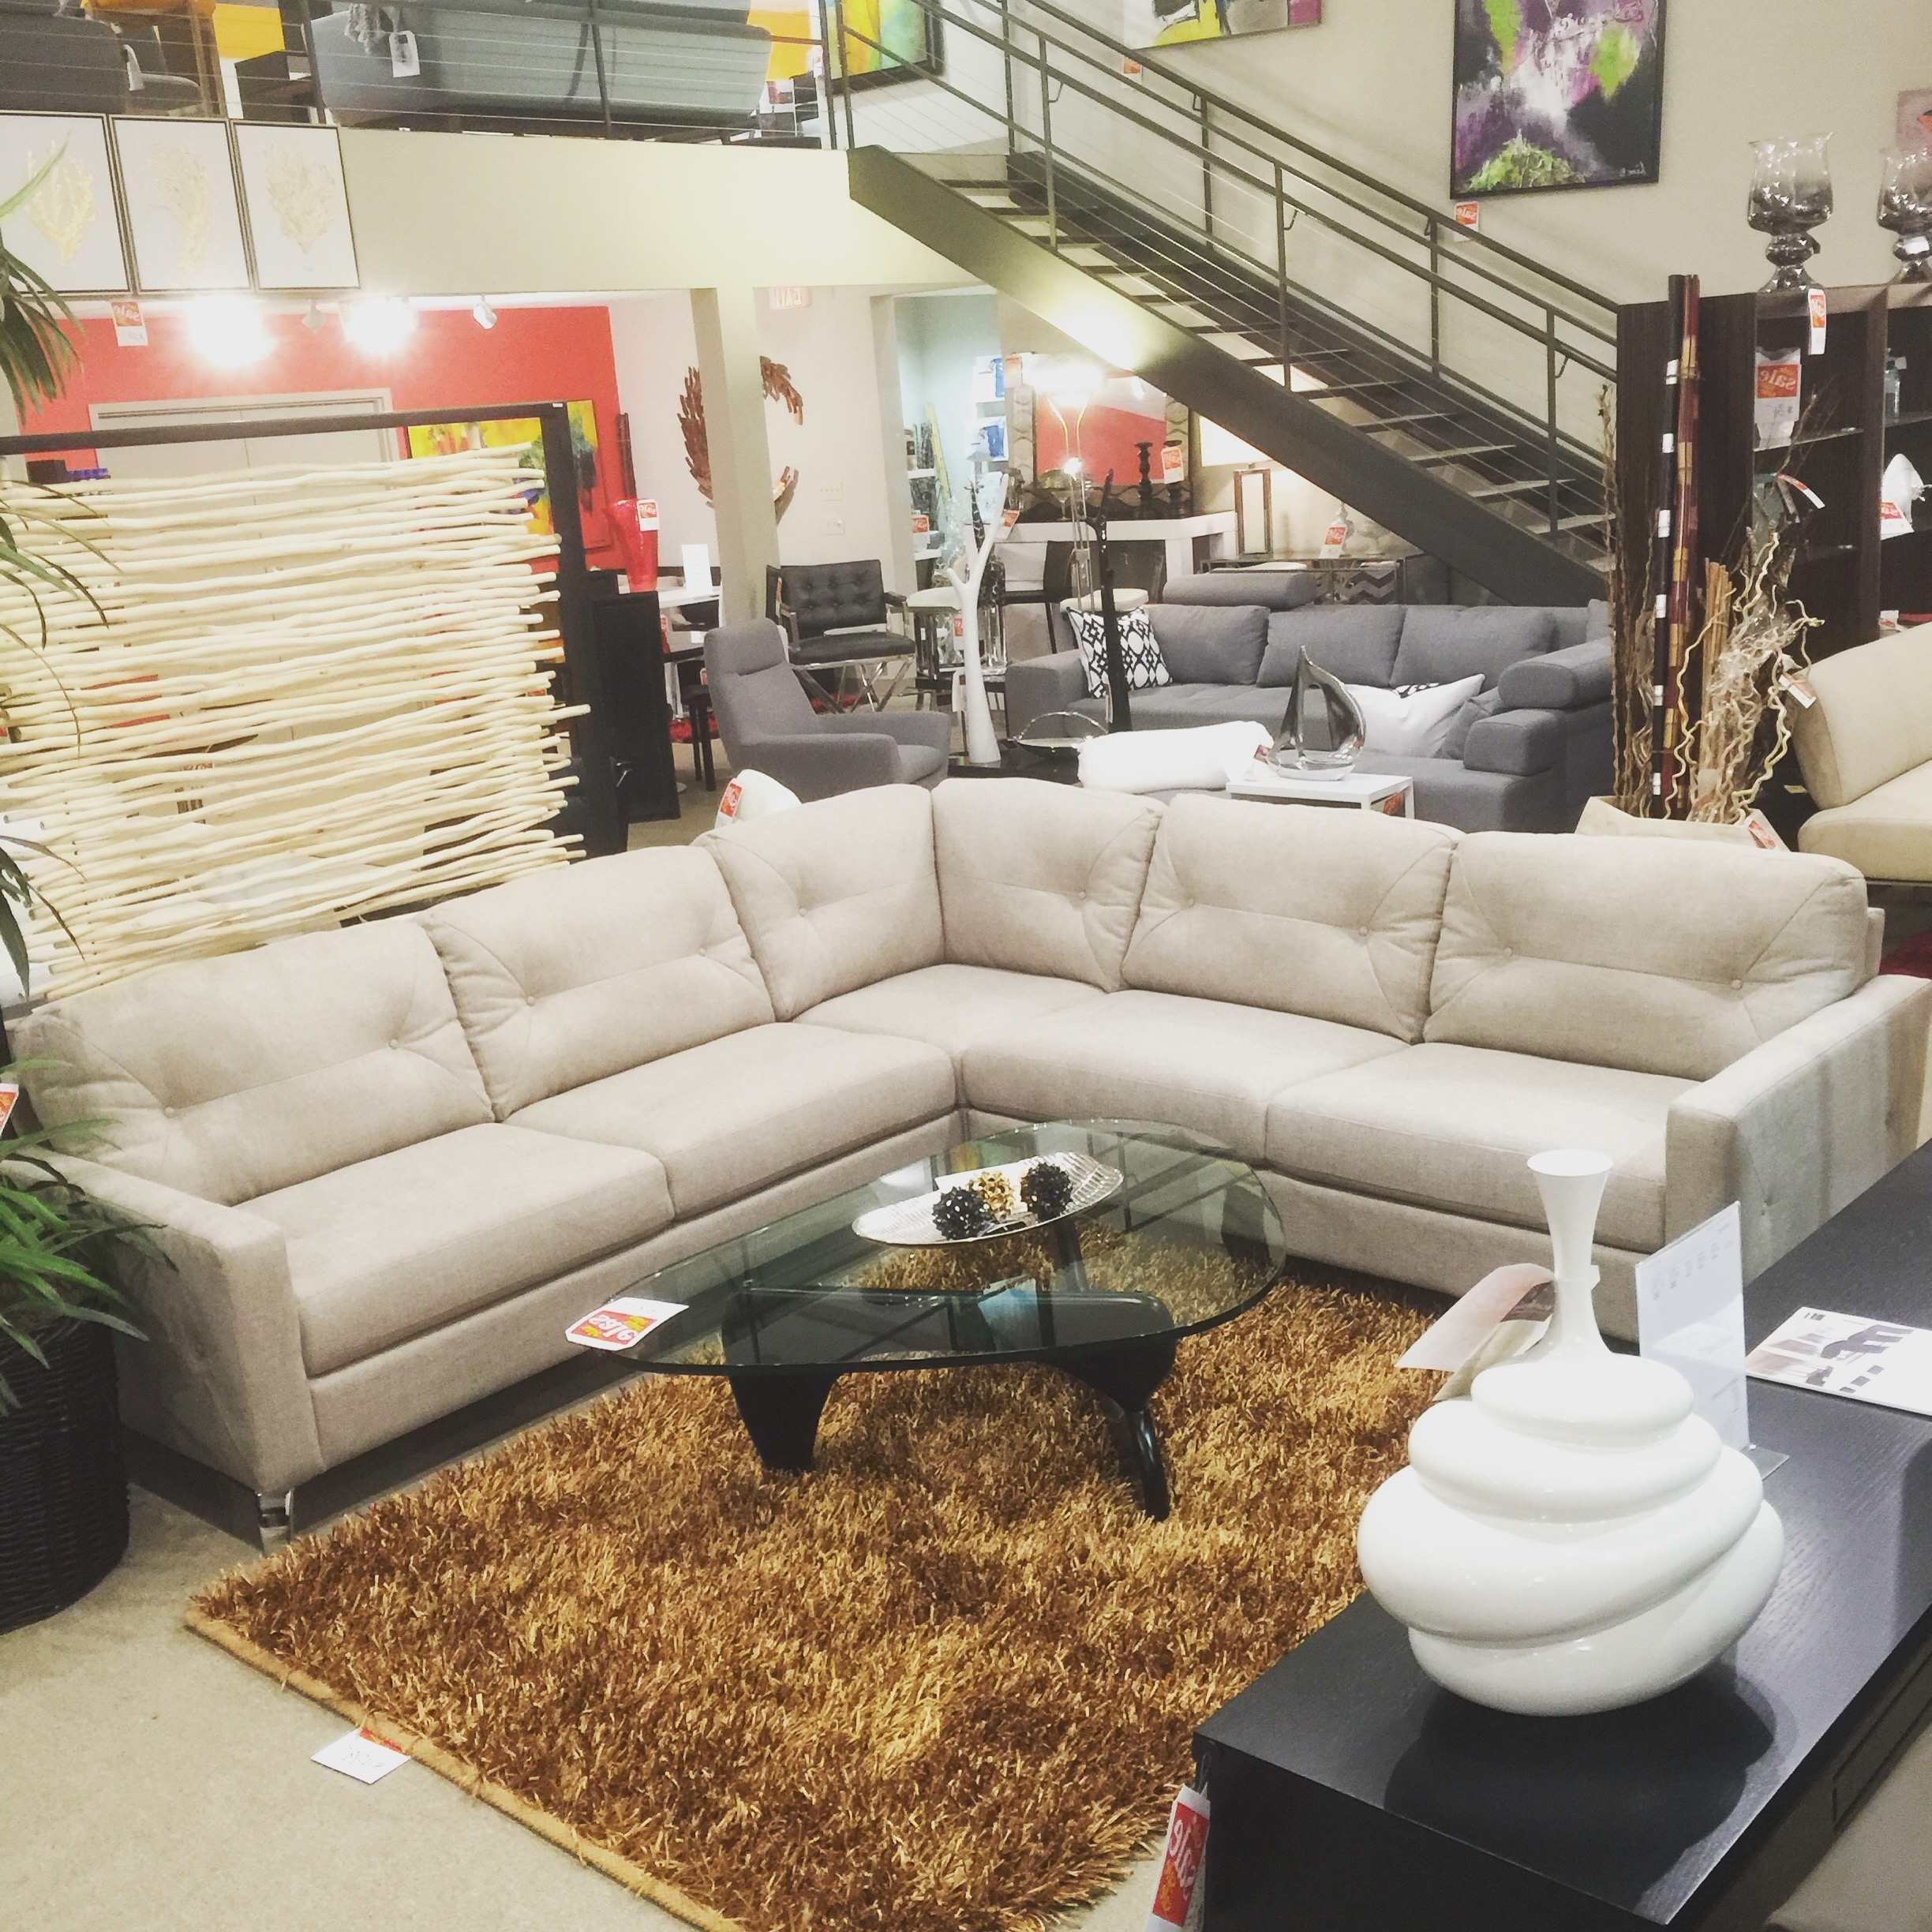 Popular New Orleans Sectional Sofas Intended For Scandinavia Inc (View 2 of 15)